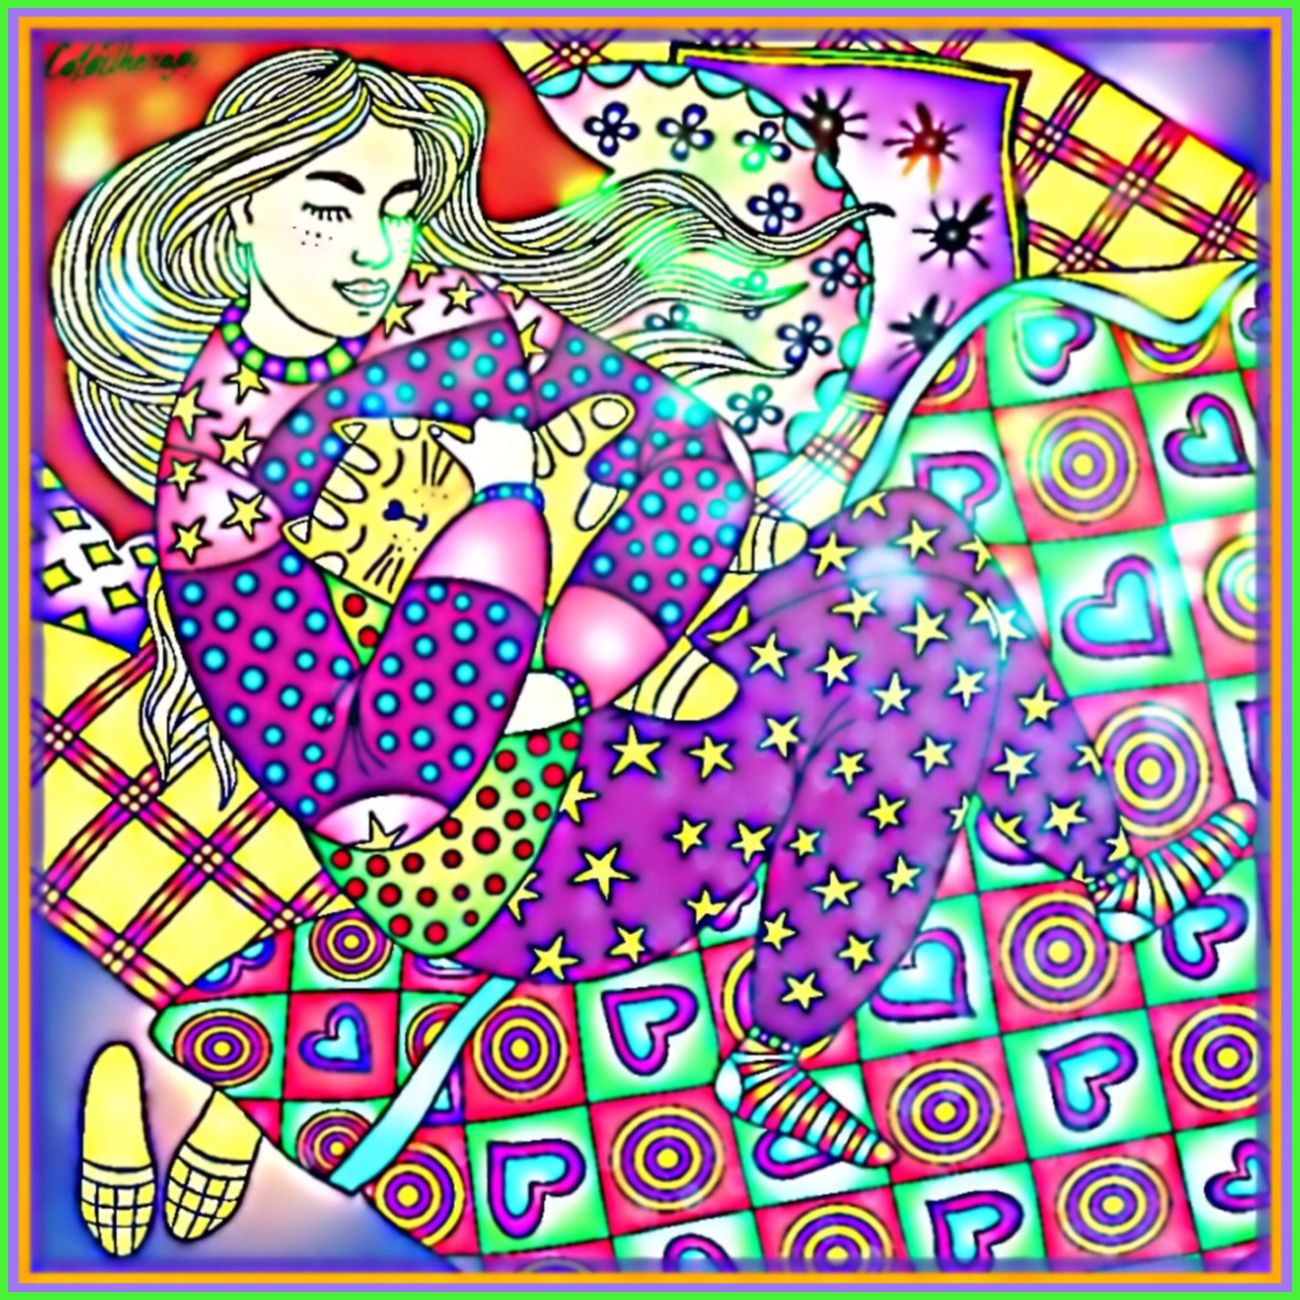 Art Series 🎨🖌🎨 Colortherapy ColortheraphyApp Picsart Adultcolouring Art Therapy ArtSeries🖌 Colourful Vibrant